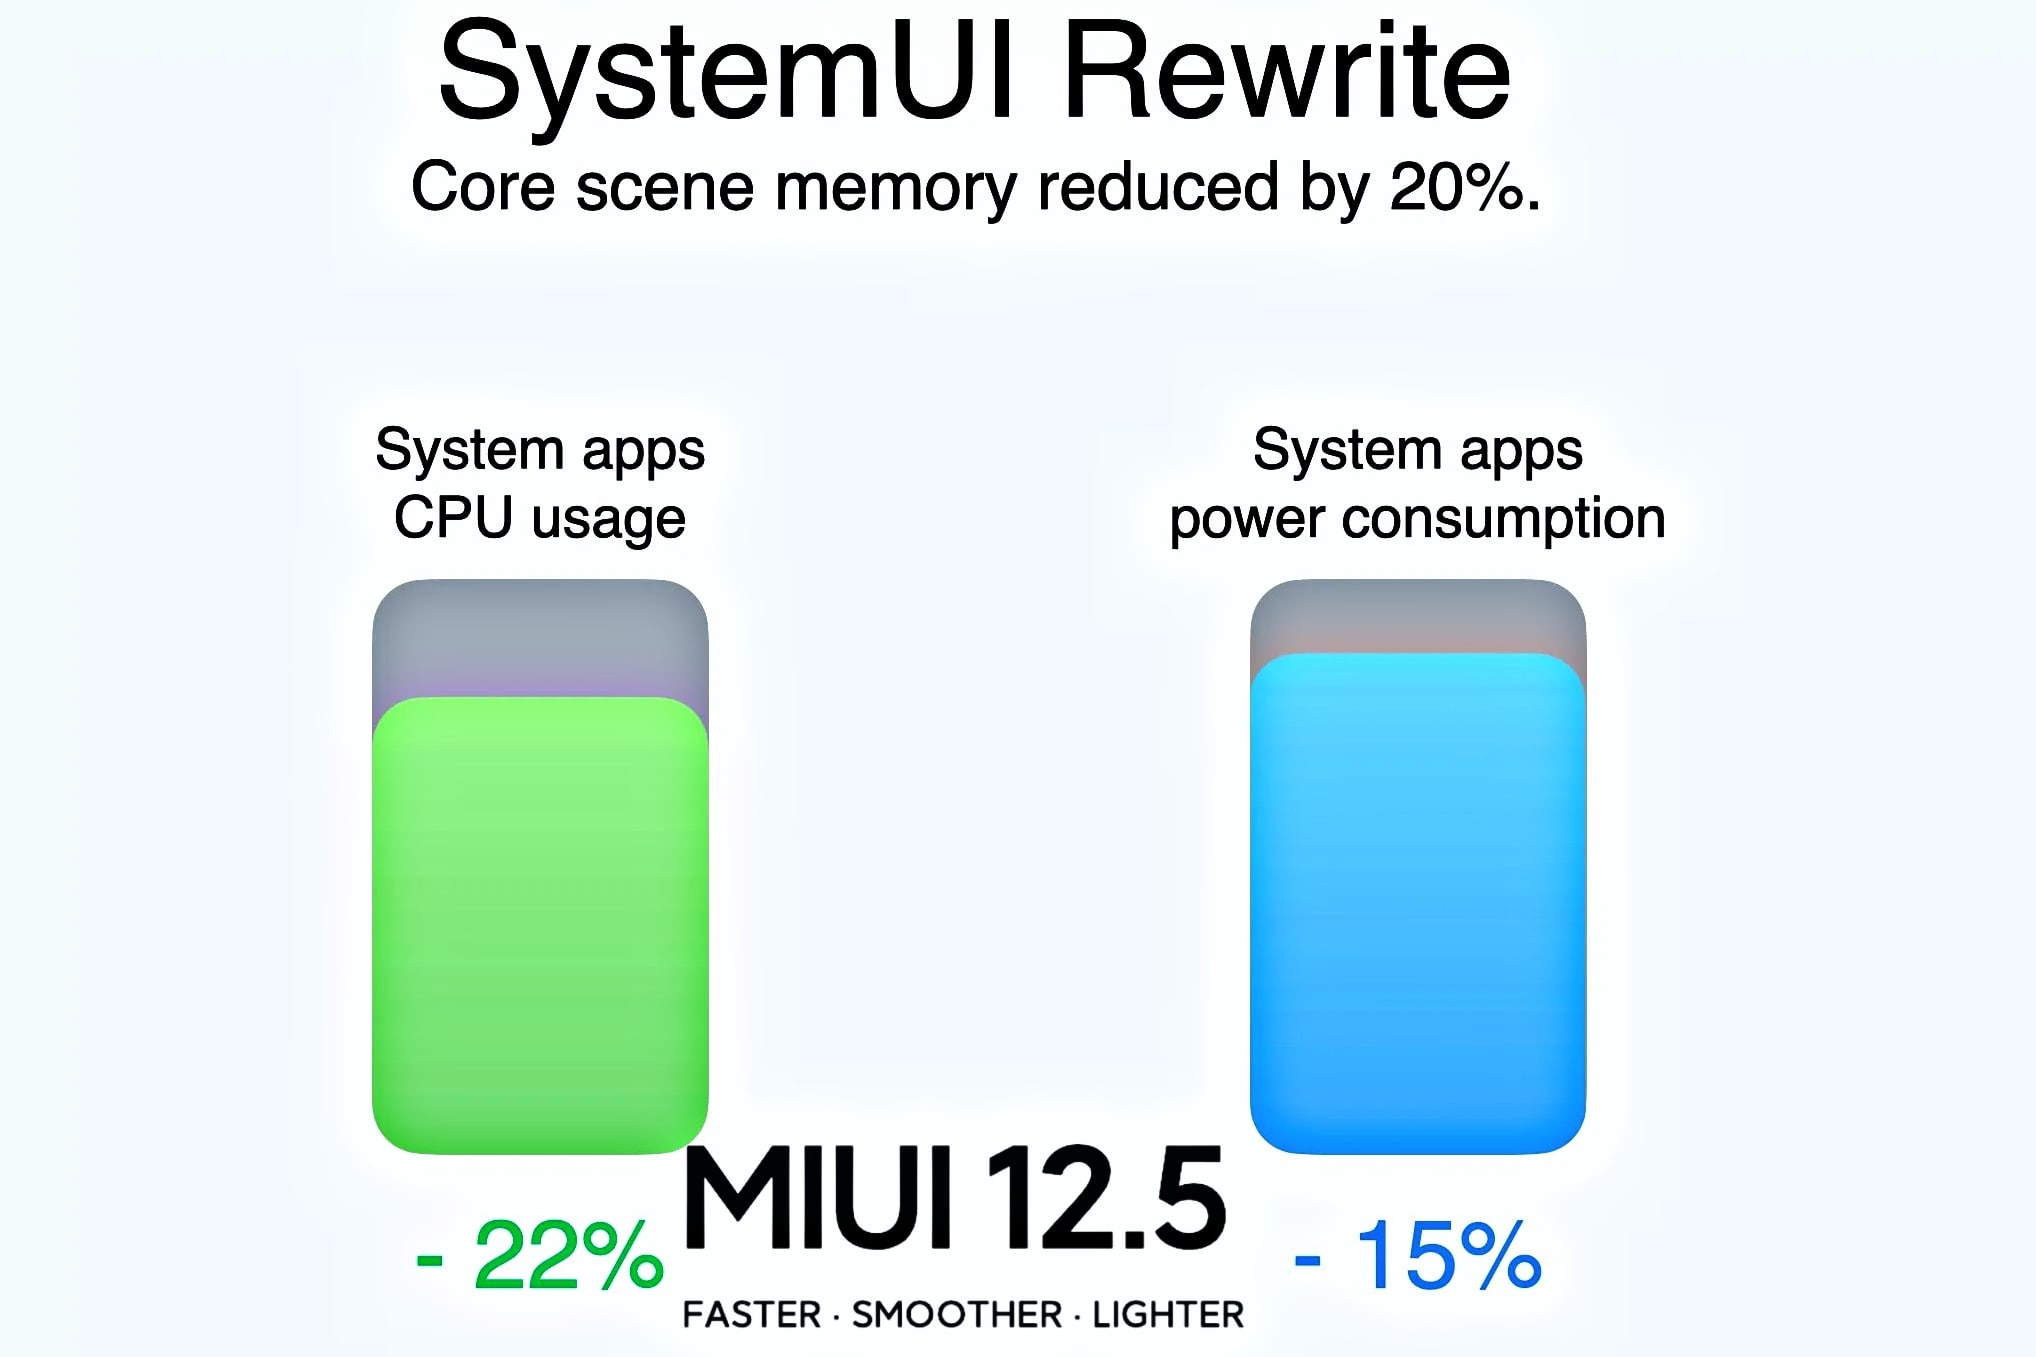 features of miui 12.5